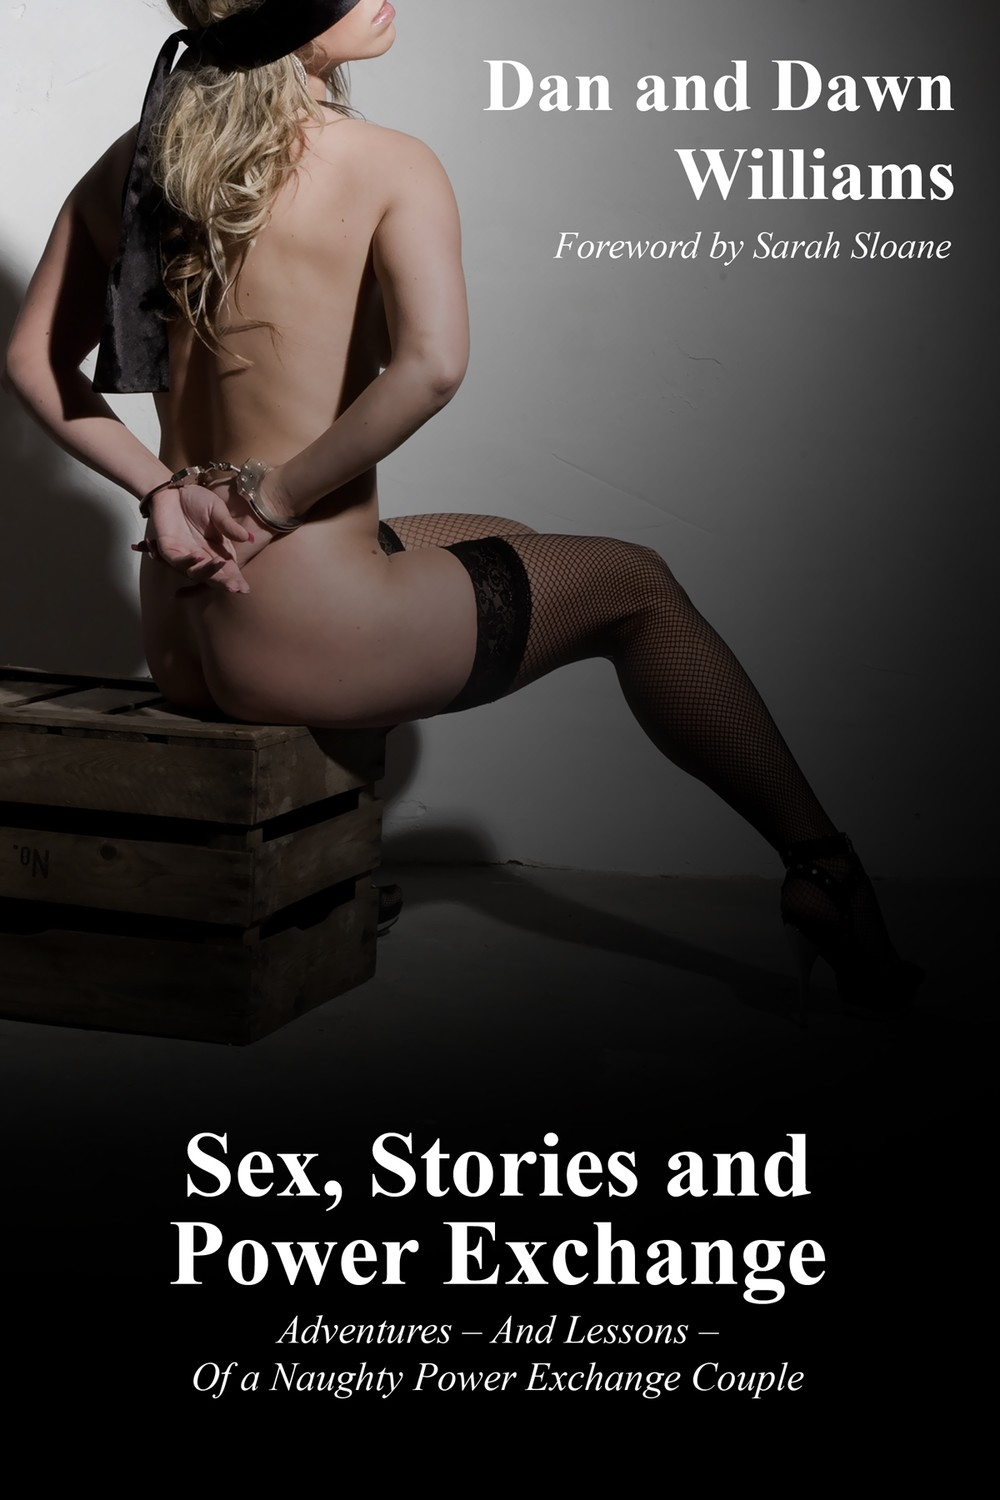 Sex, Stories, and Power Exchange: Adventures - and Lessons - of a Naughty Power Exchange Couple